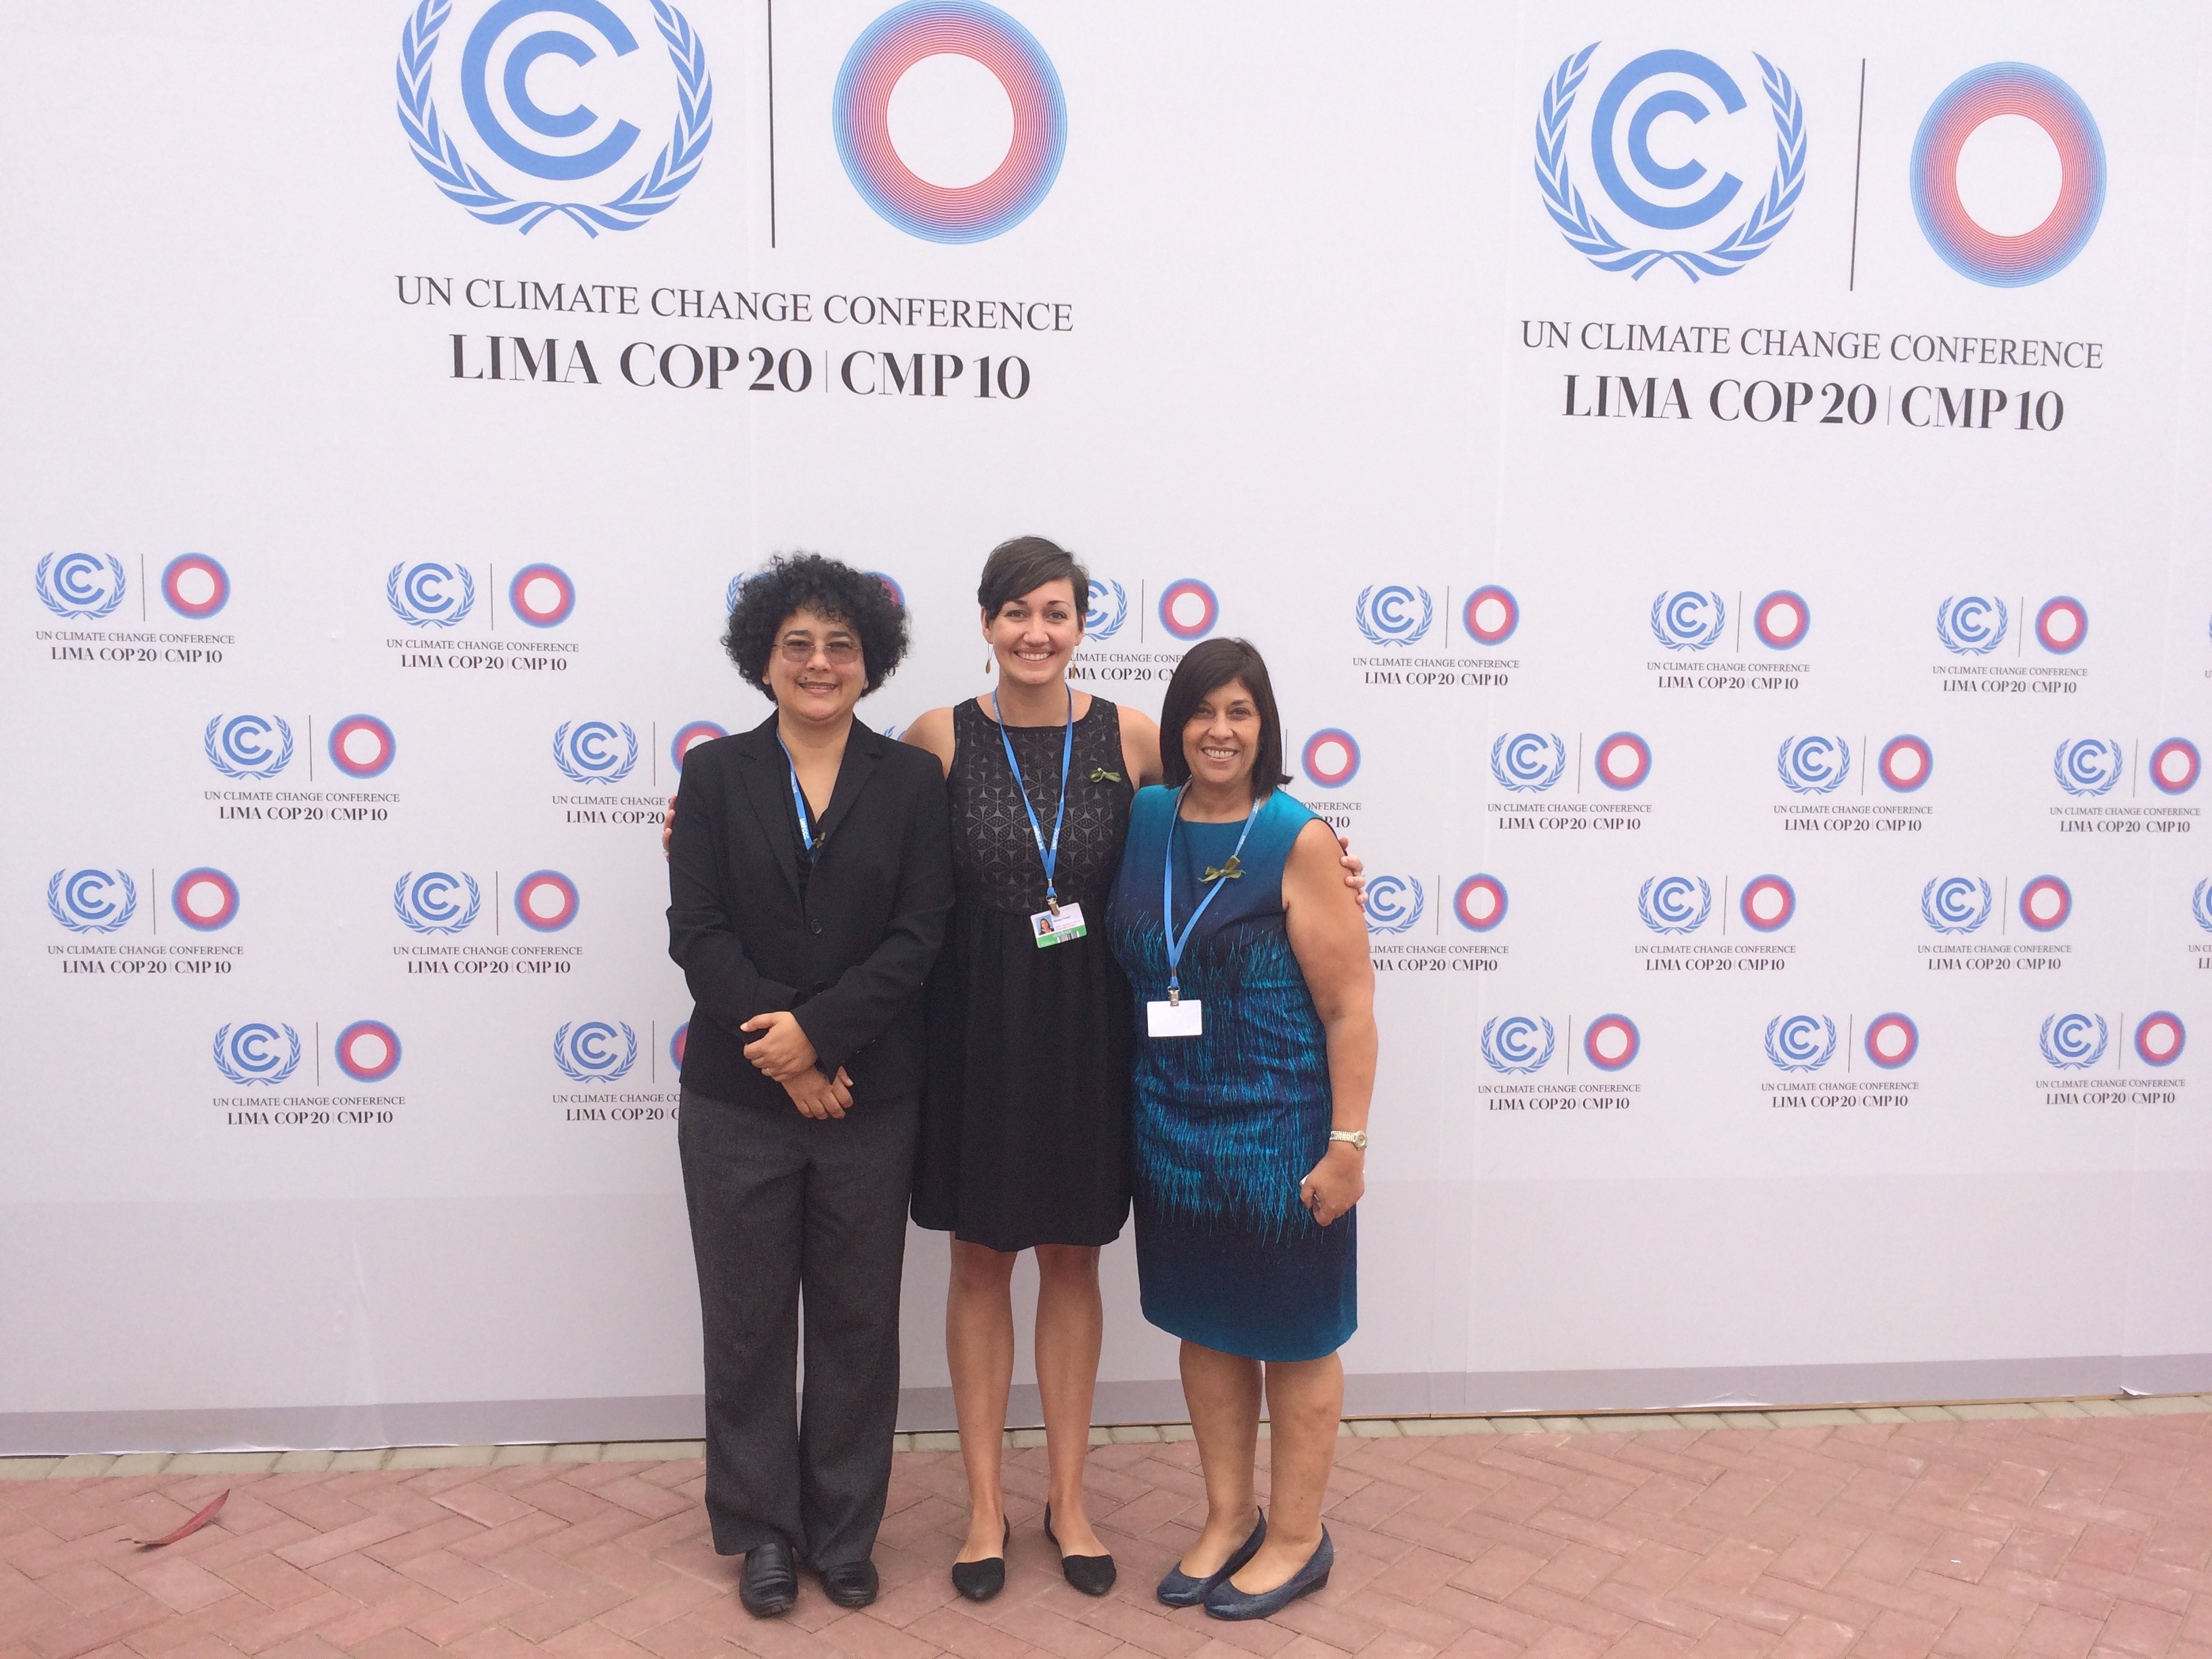 IUCN GGO team members participate at UNFCC COP20 in Lima.